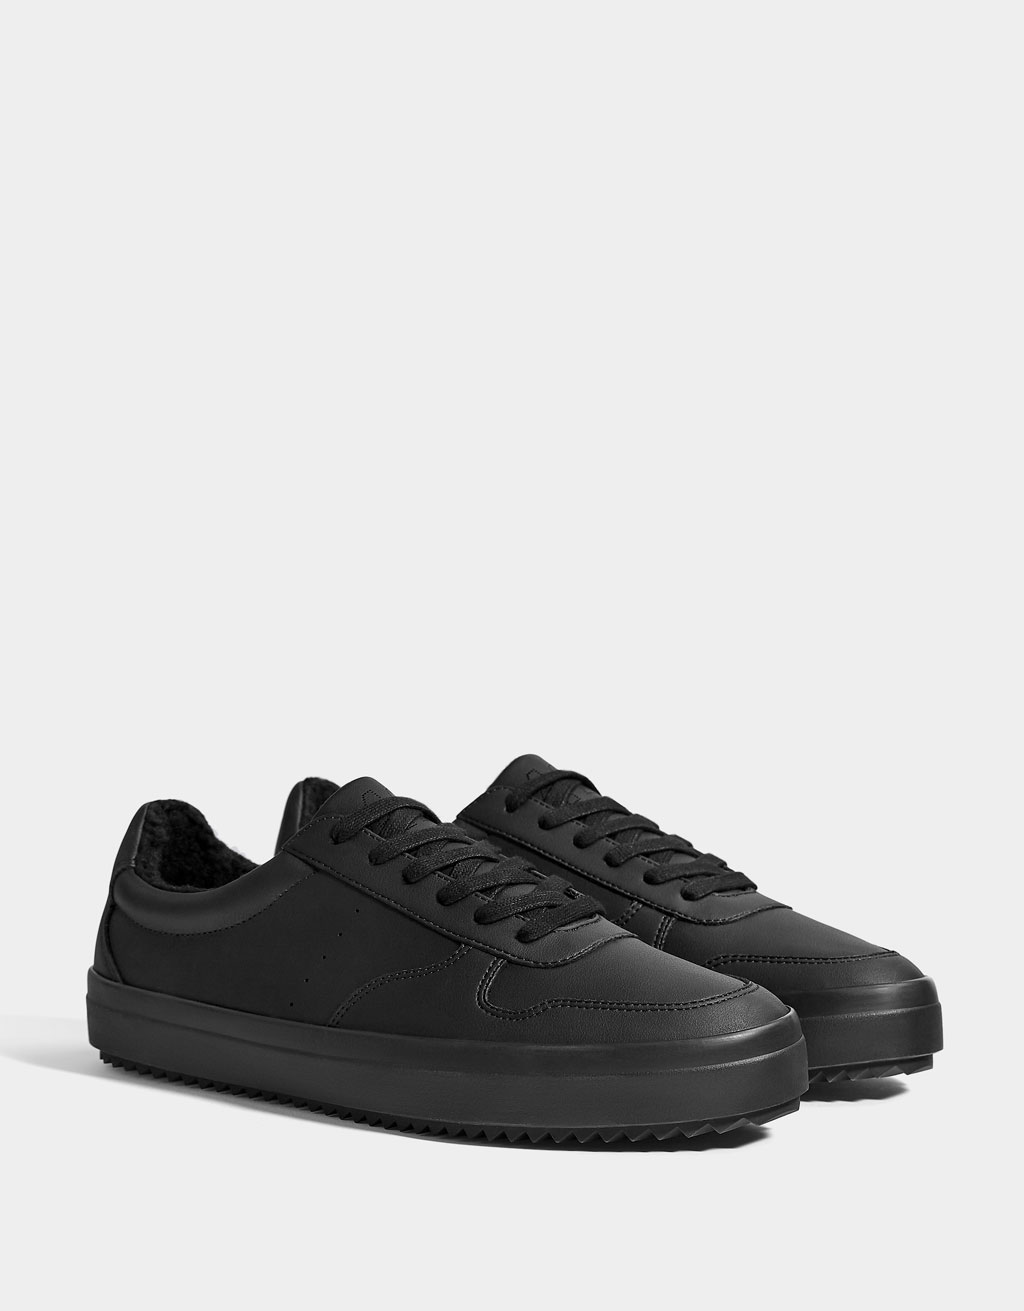 Men's lined trainers